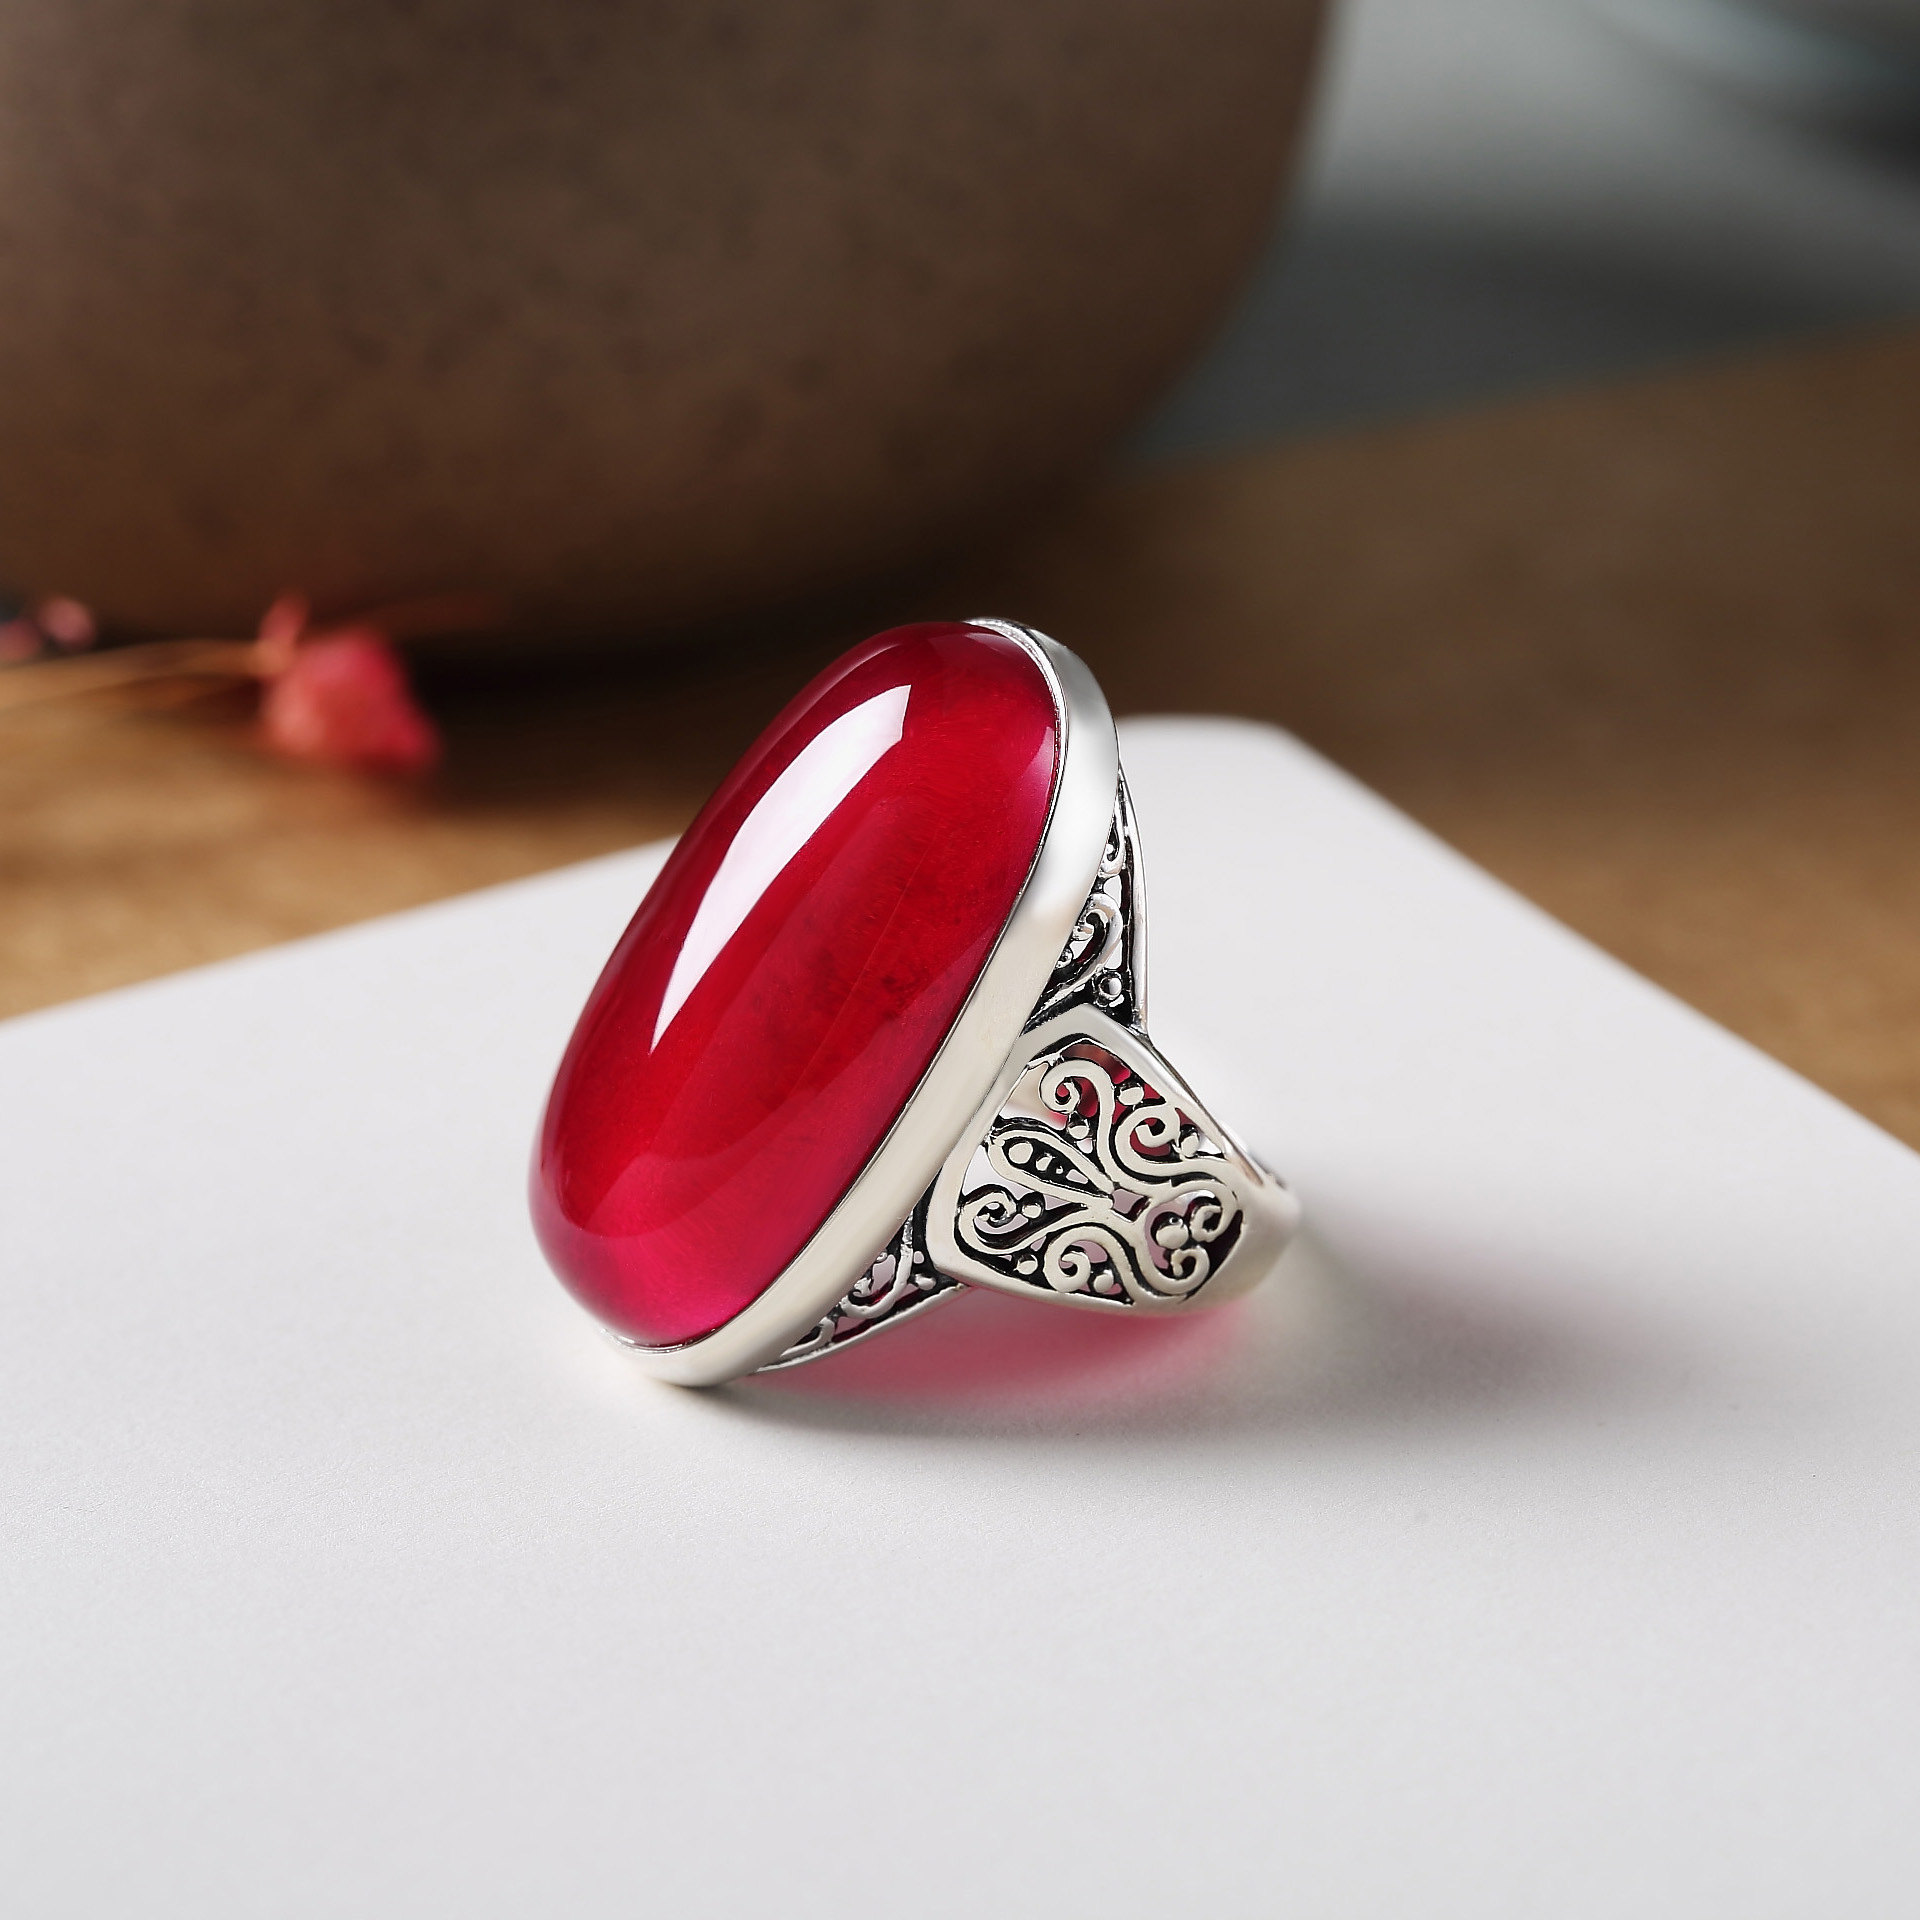 UNIQUE CHINA 925 SILVER HAND-CARVED RING HIGH-END GIFT COLLECTION OLD